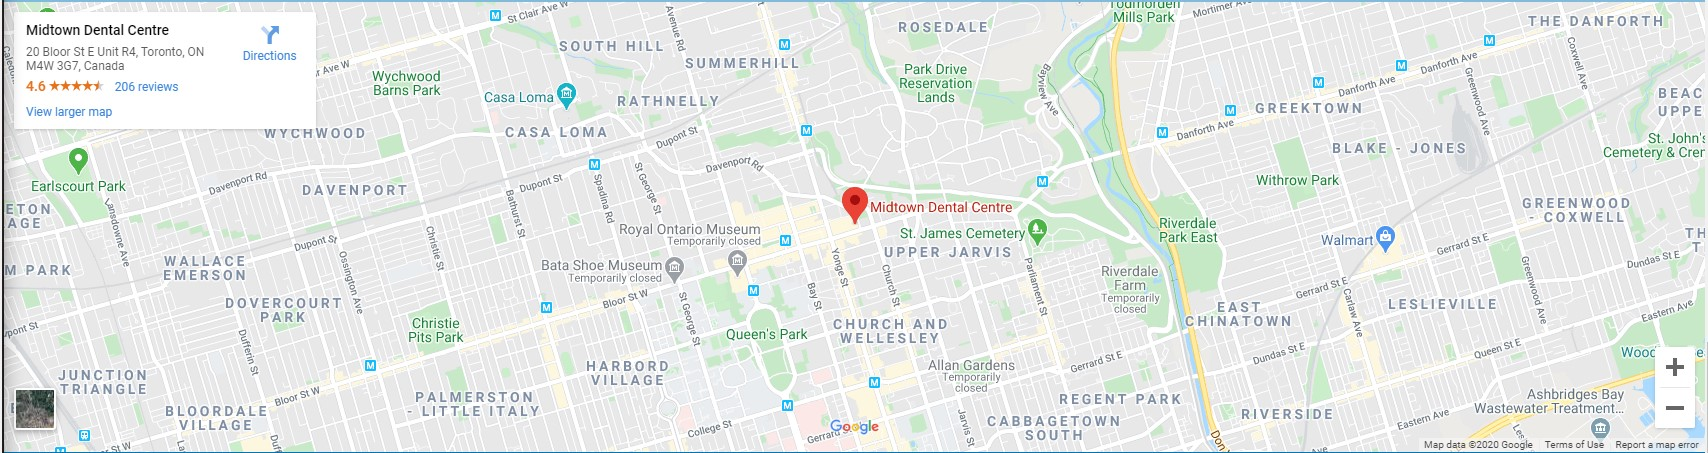 midtown dental toronto dentist map